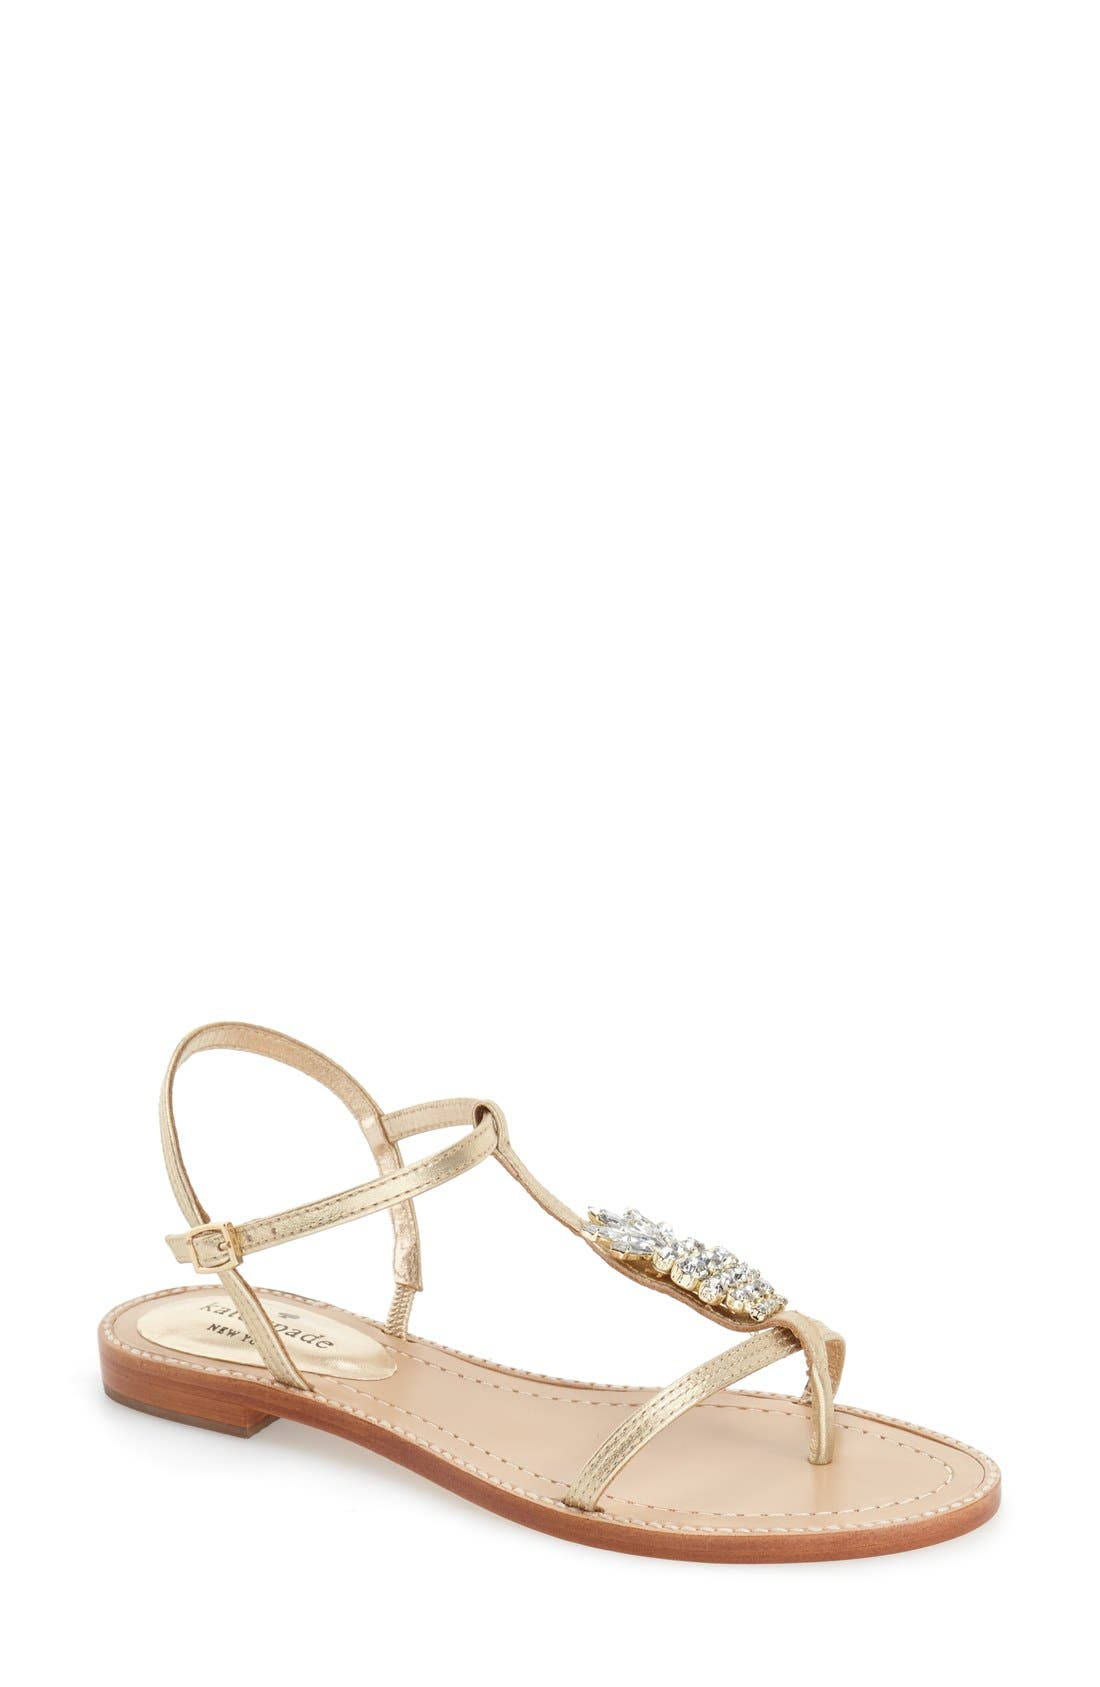 Alternate Image 1 Selected - kate spade new york 'serafina' crystal pineapple flat sandal (Women)